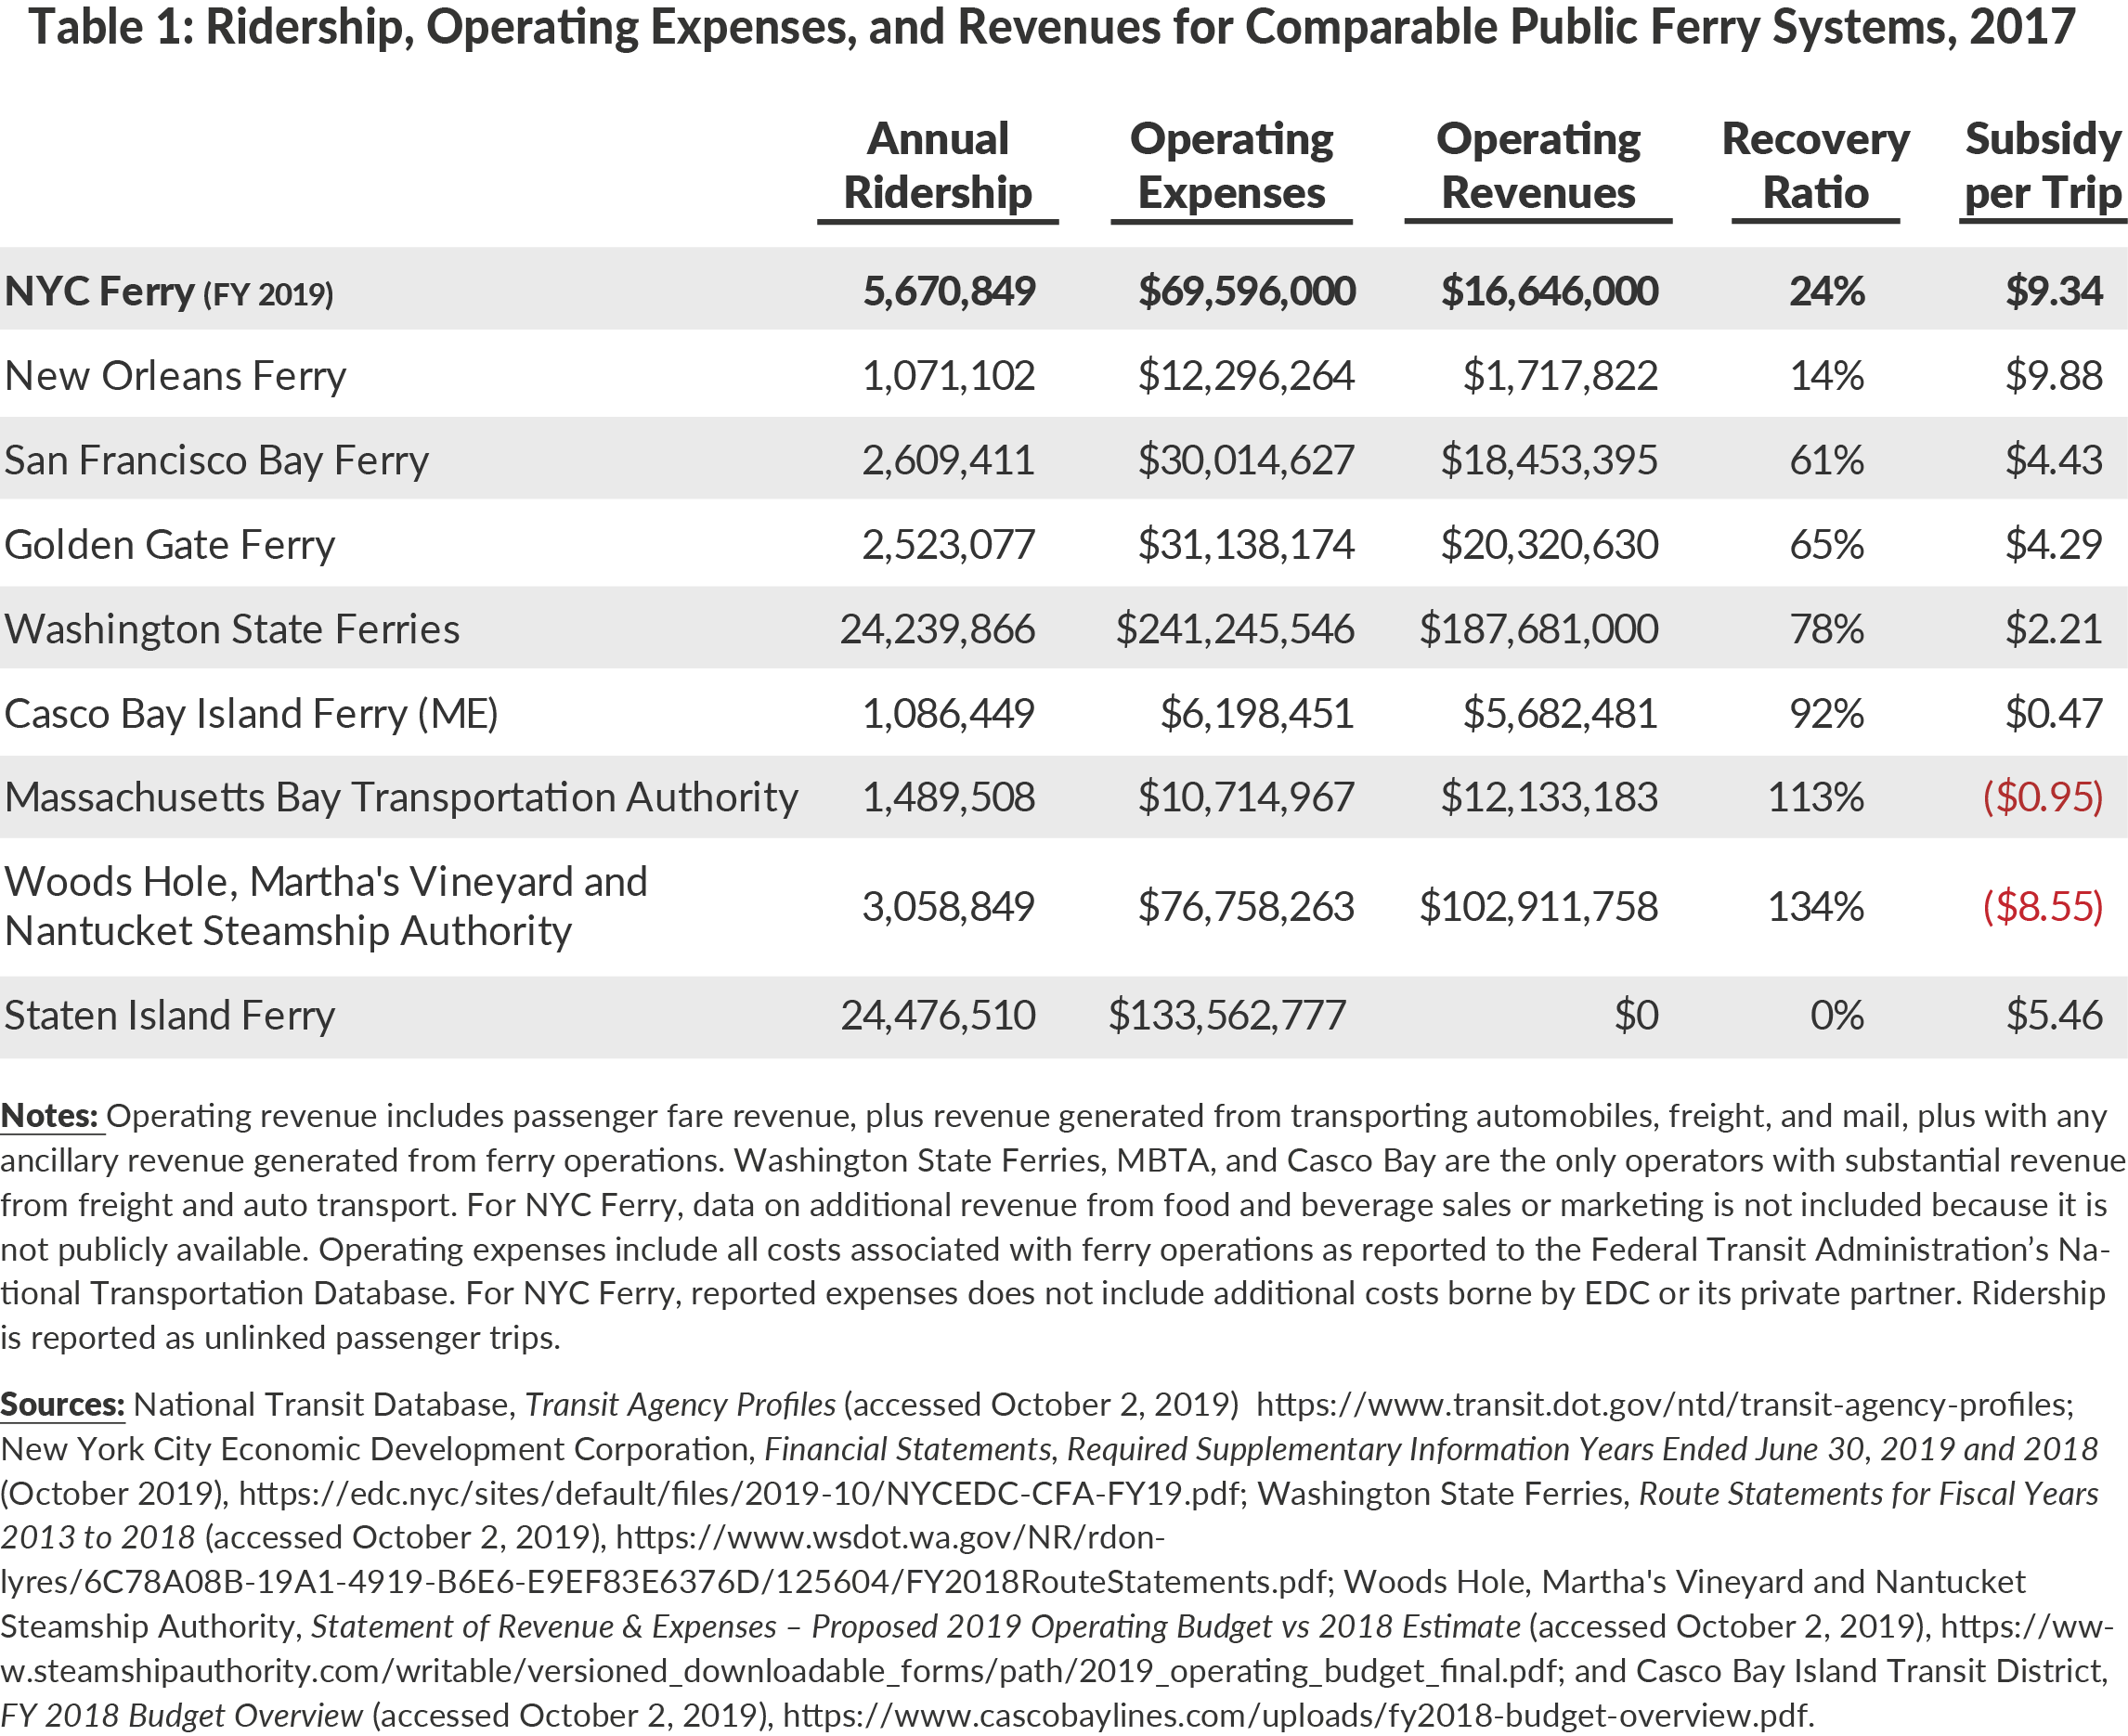 Table 1: Ridership, Operating Expenses, and Revenues for Comparable Public Ferry Systems, 2017